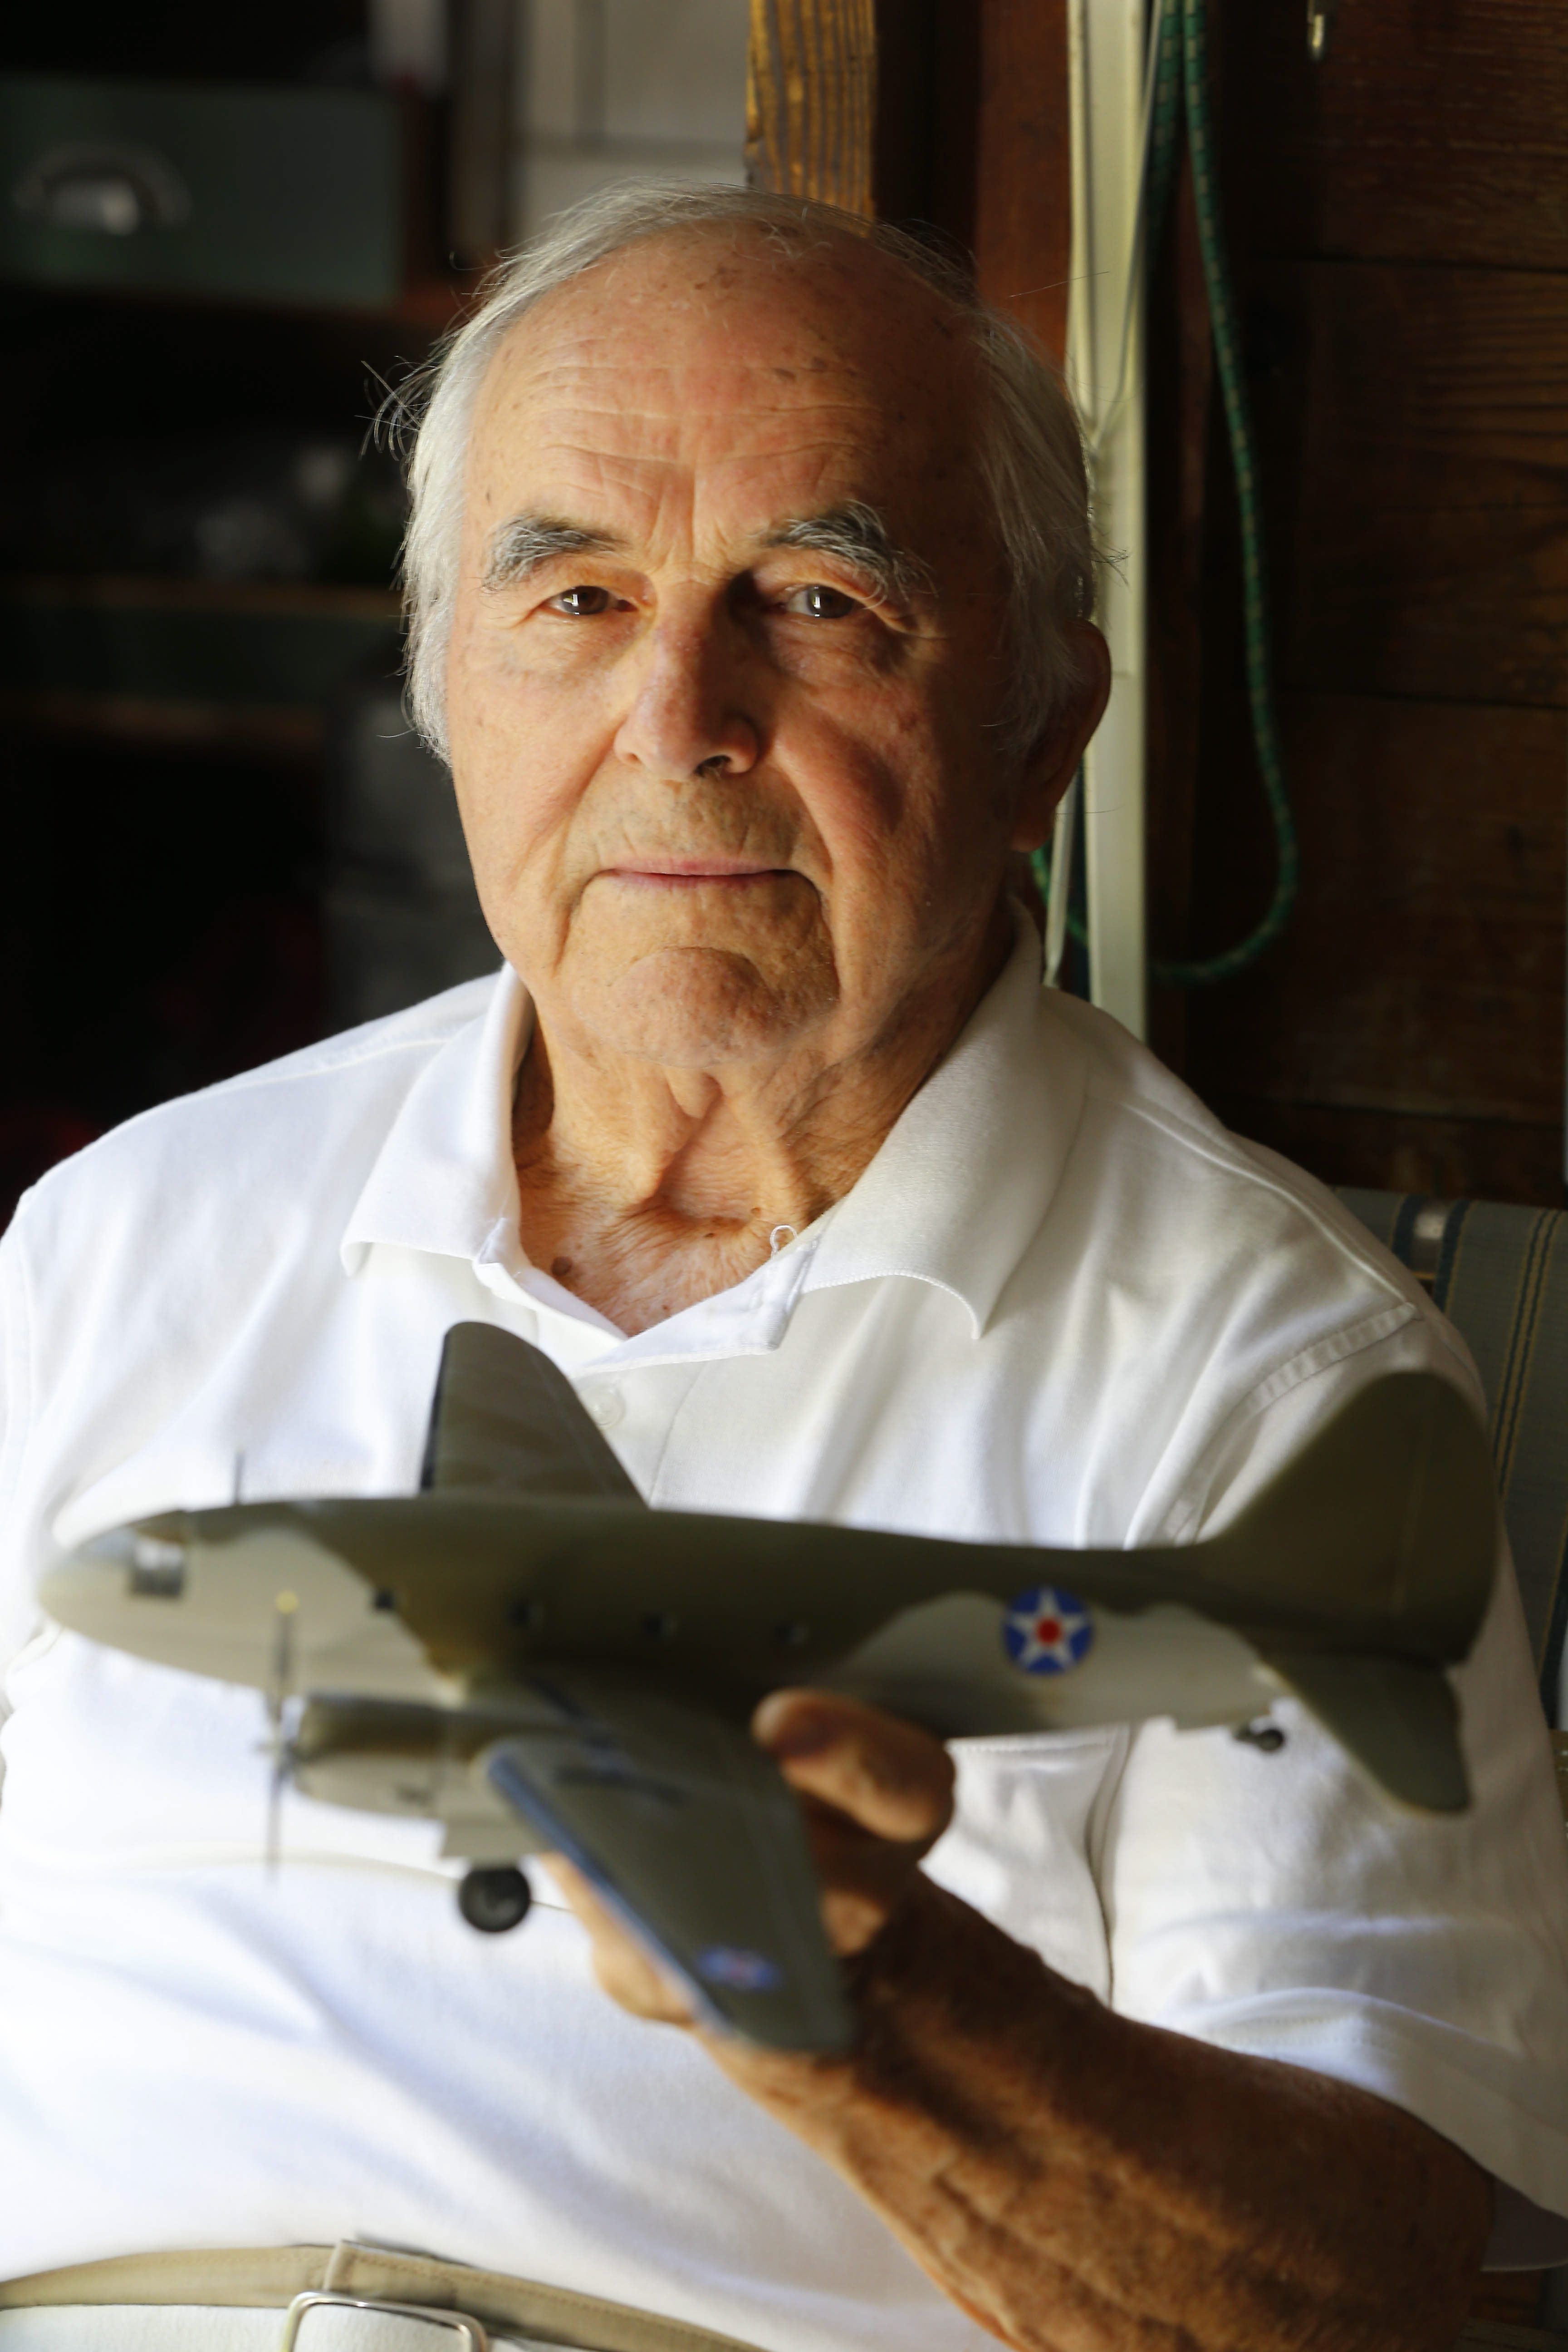 Robert J. Parks, 91, holds a model of the airplane he served on in the China-Burma-India Theater during World War II.